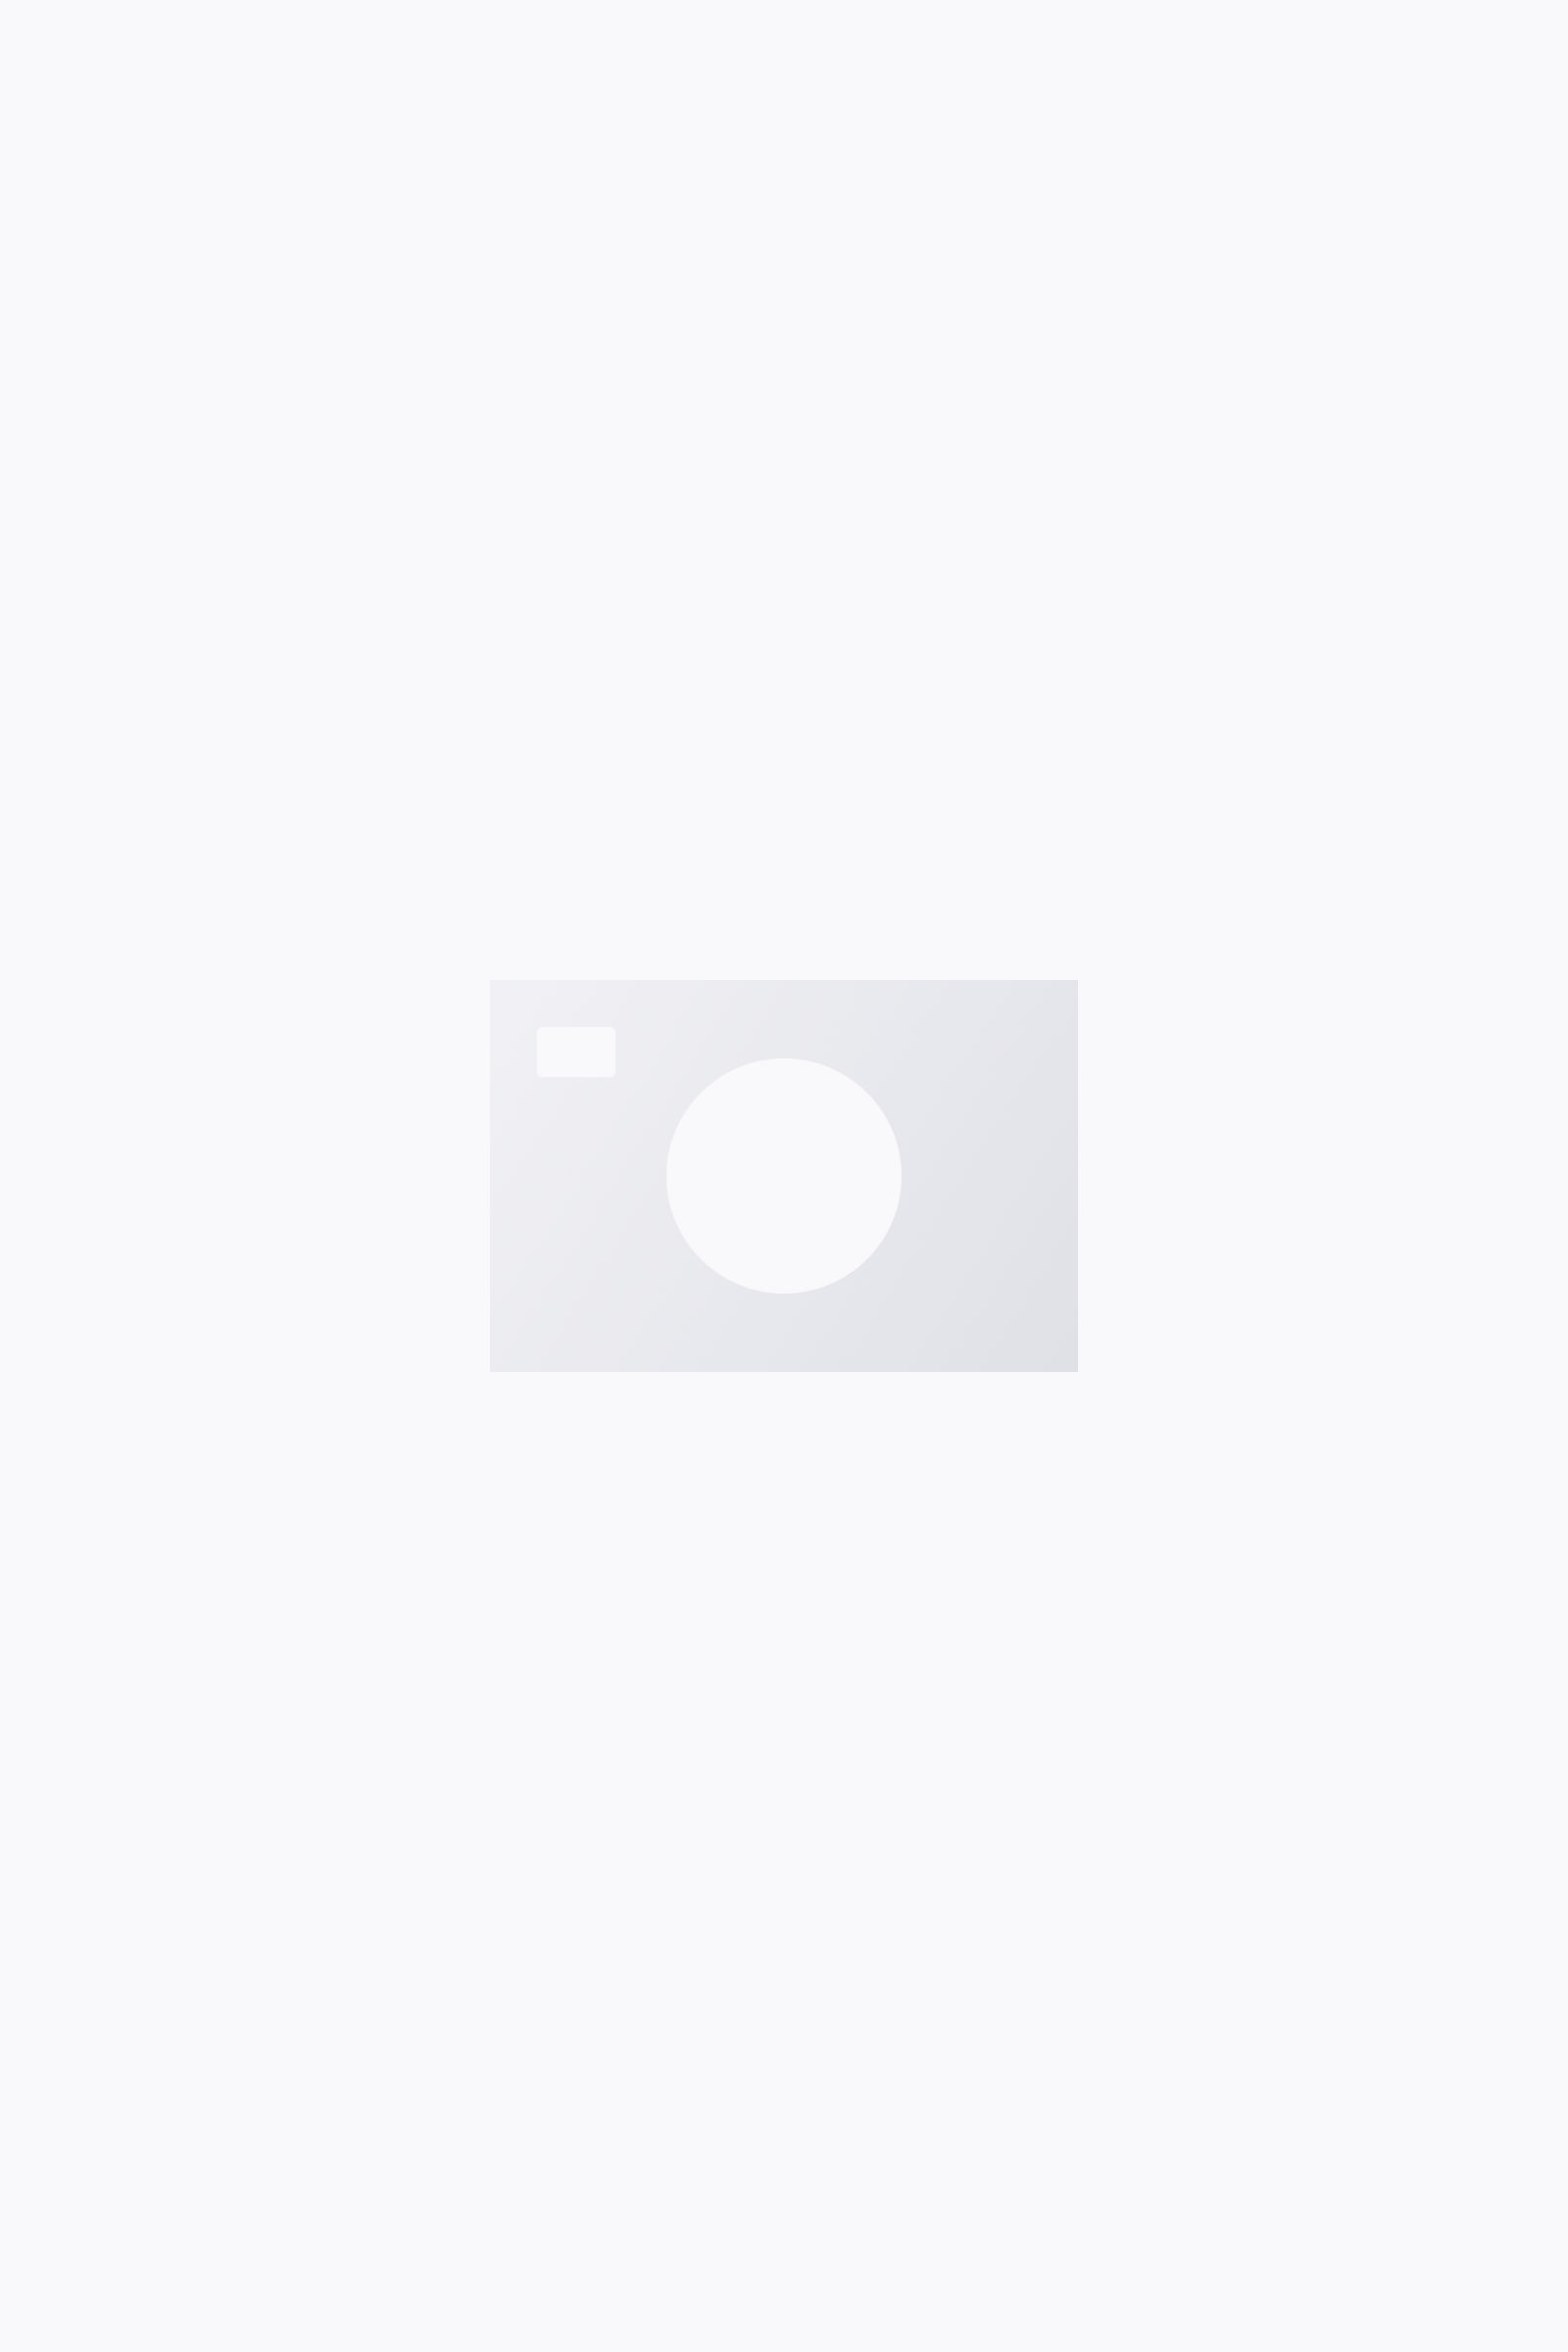 COS HOODED PONCHO,black